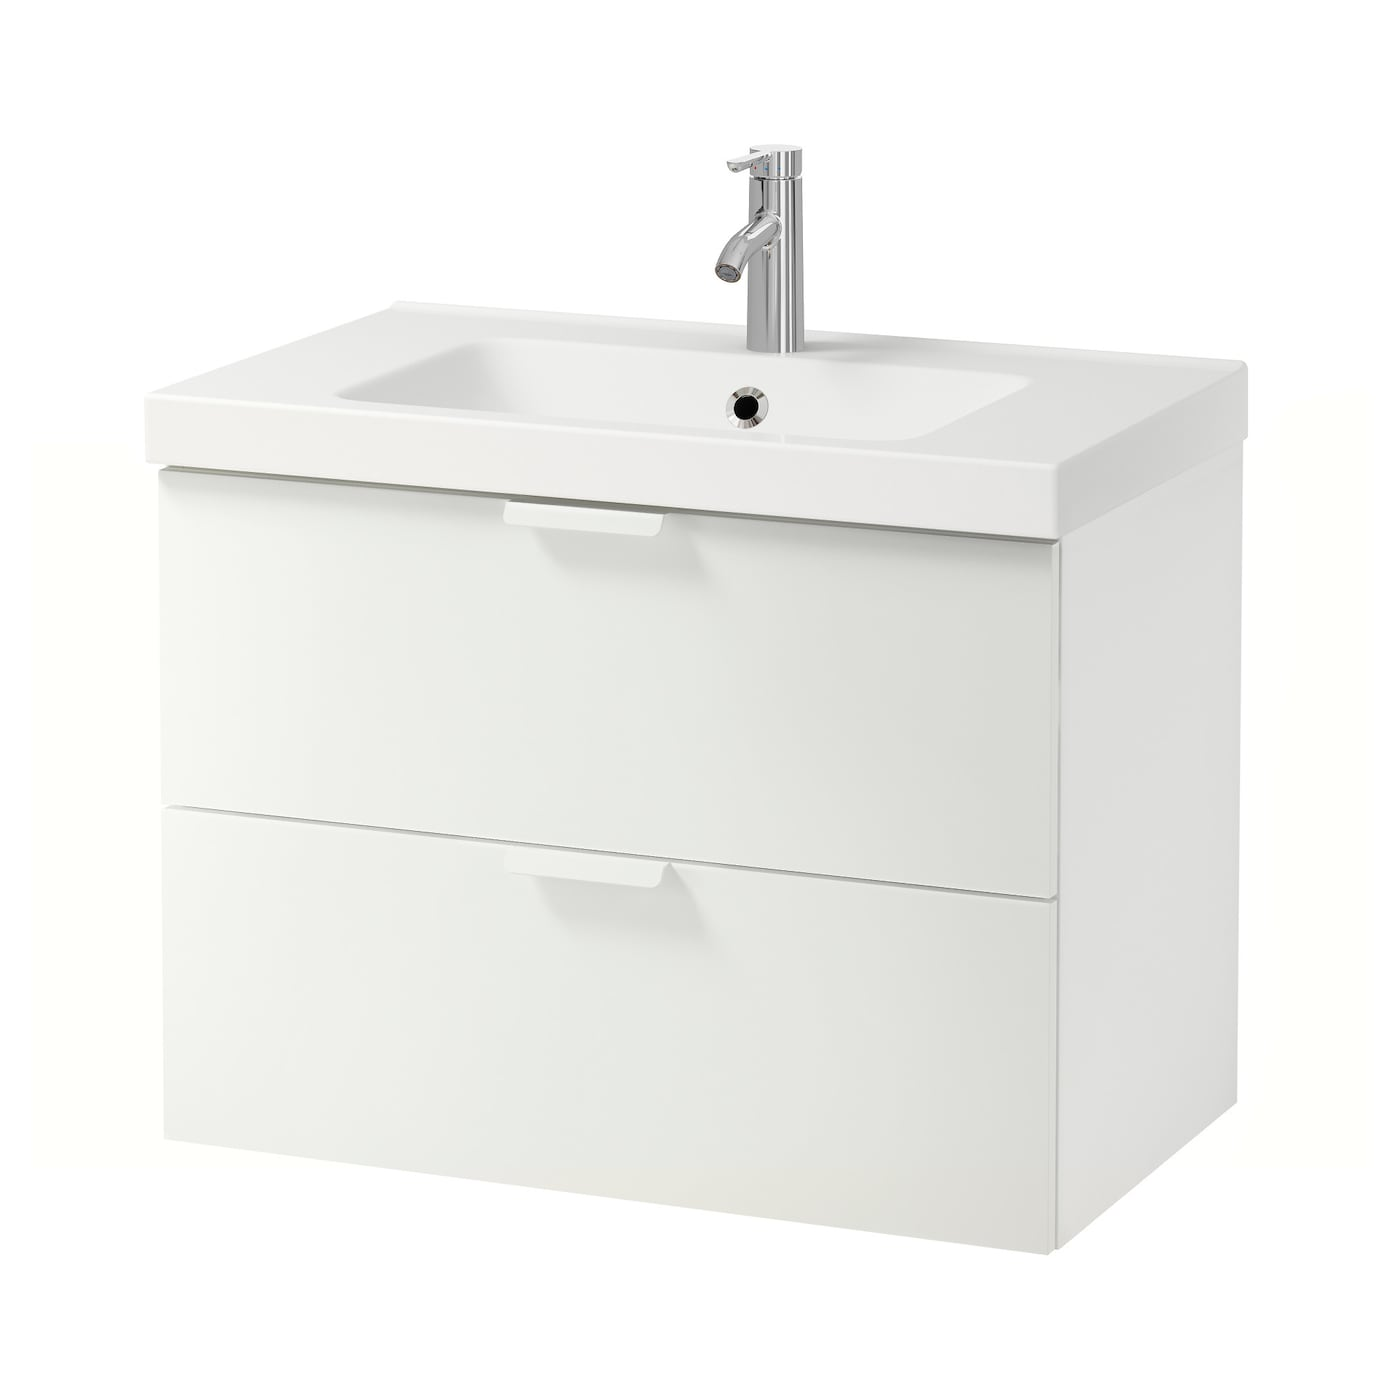 odensvik godmorgon meuble lavabo 2tir blanc 80x49x64 cm ikea. Black Bedroom Furniture Sets. Home Design Ideas